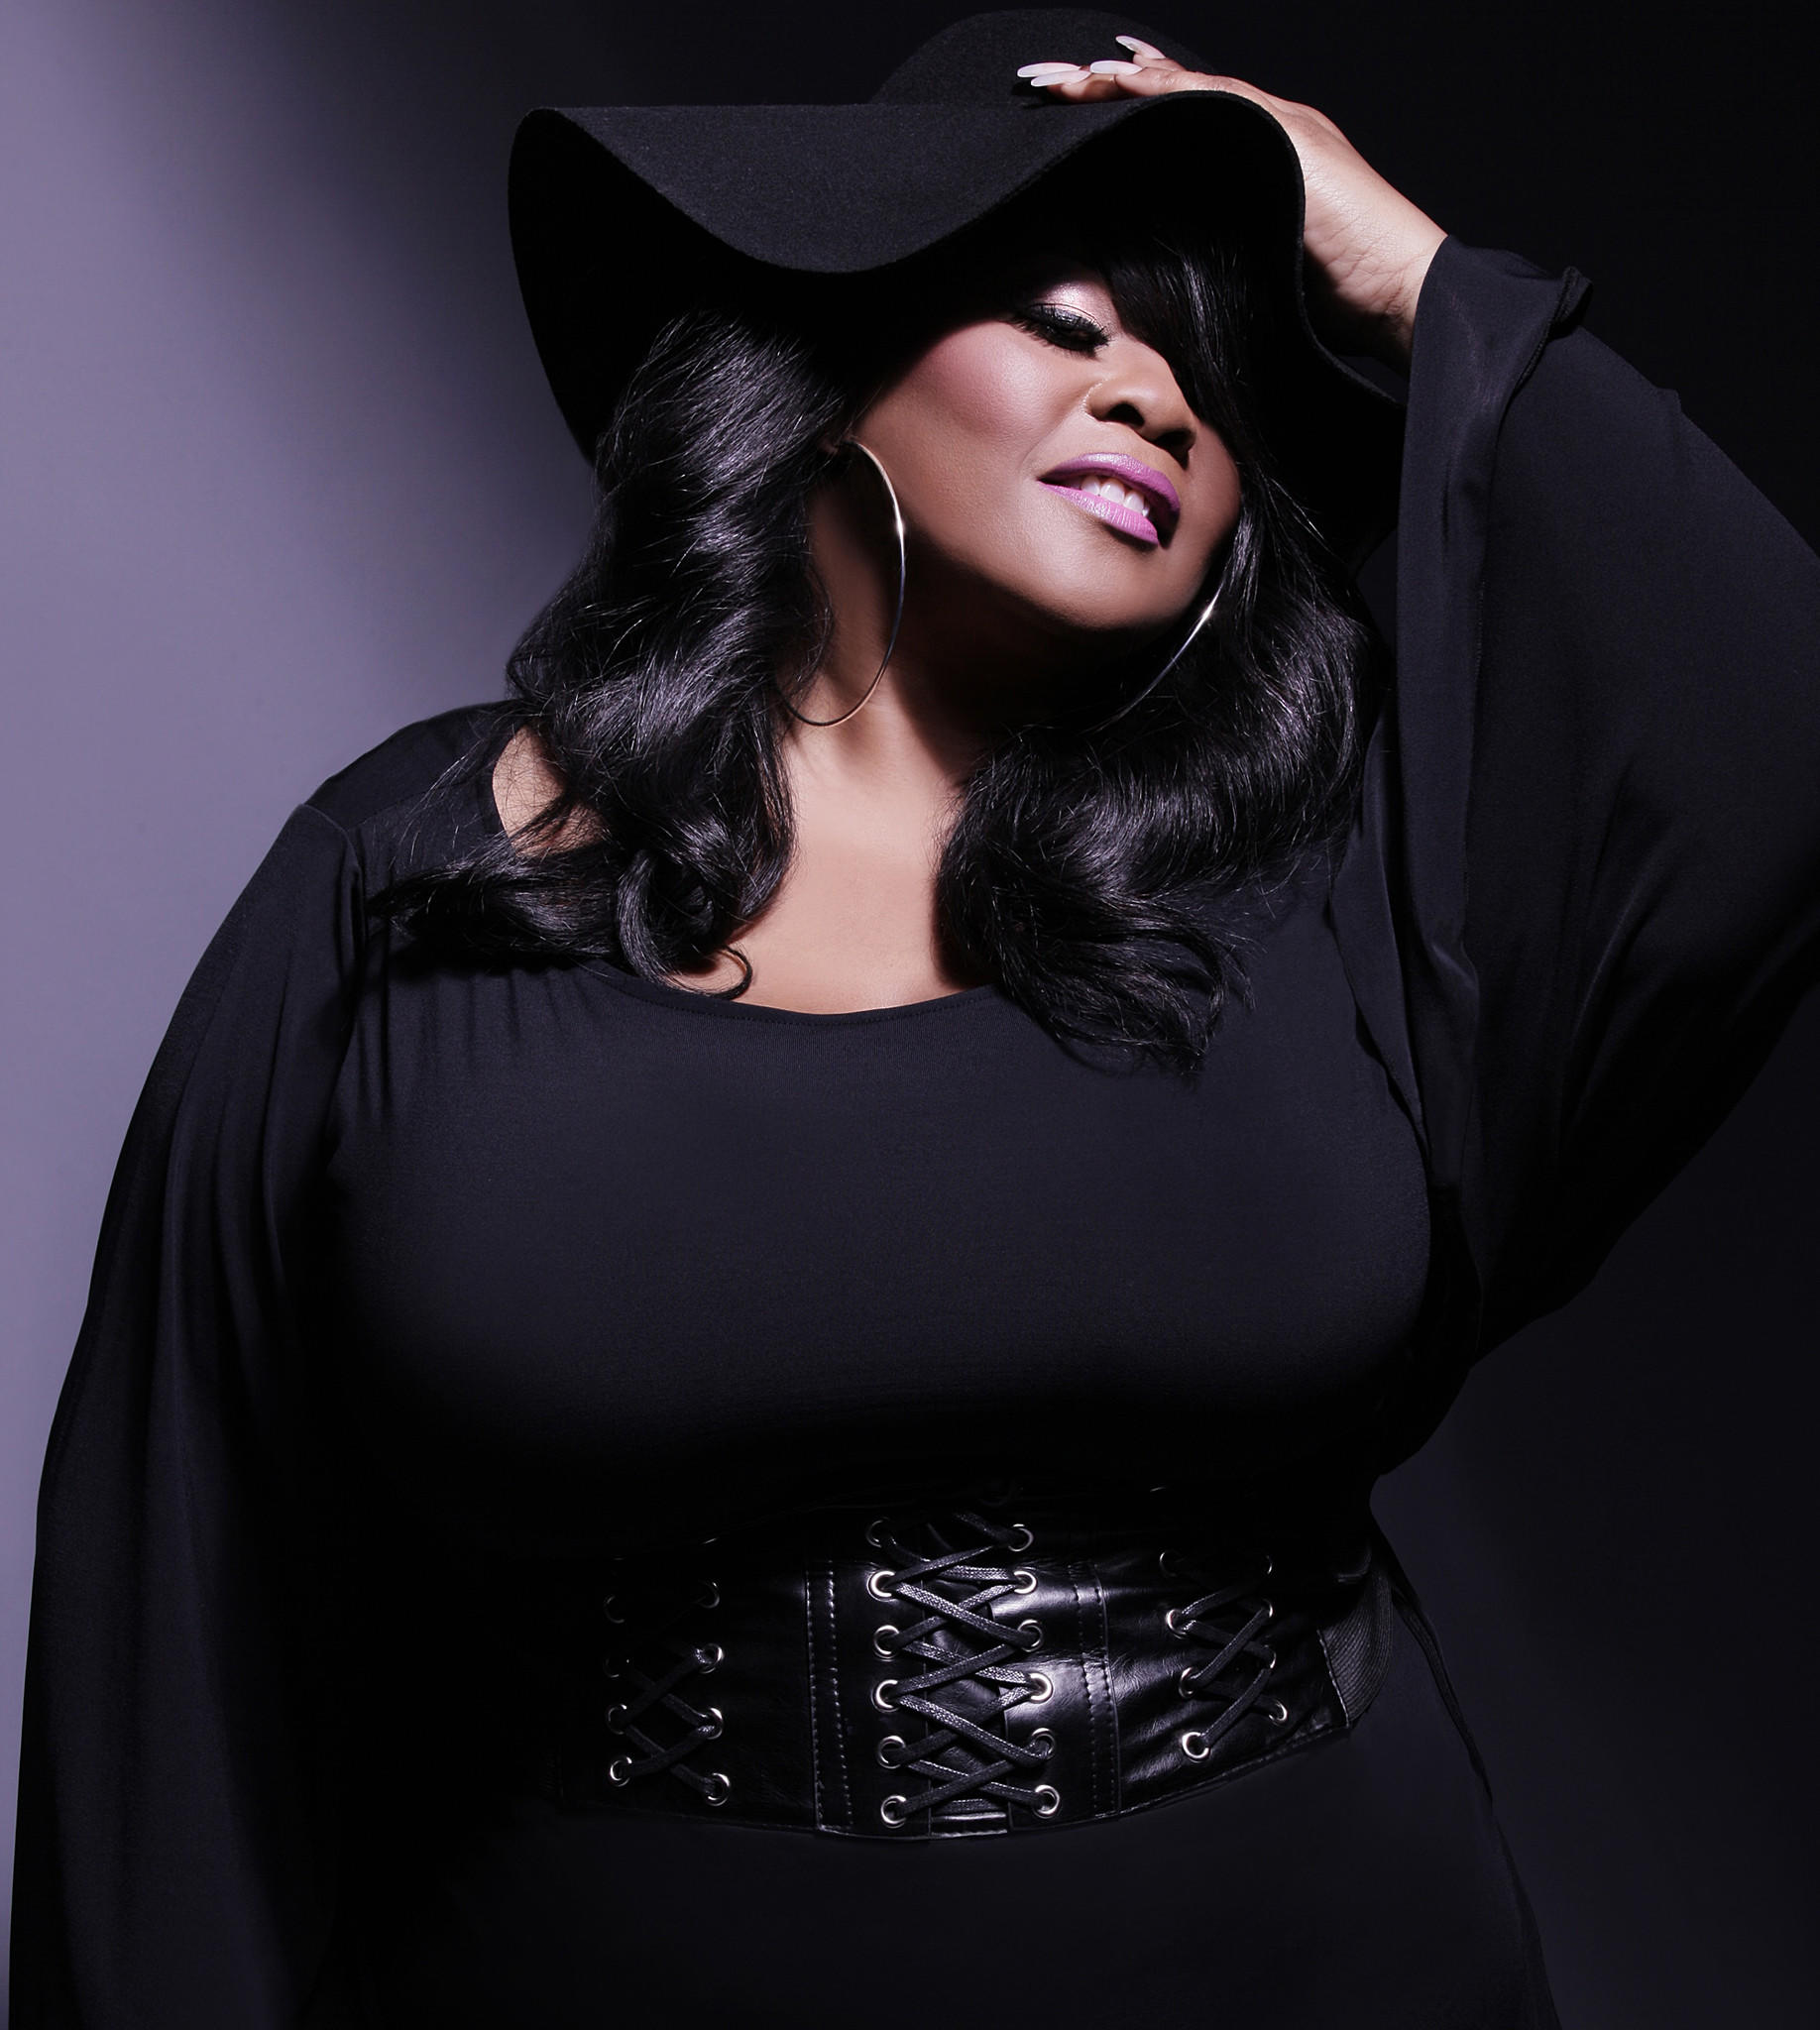 Baltimore soul singer Maysa received her first Grammy nomination this year.